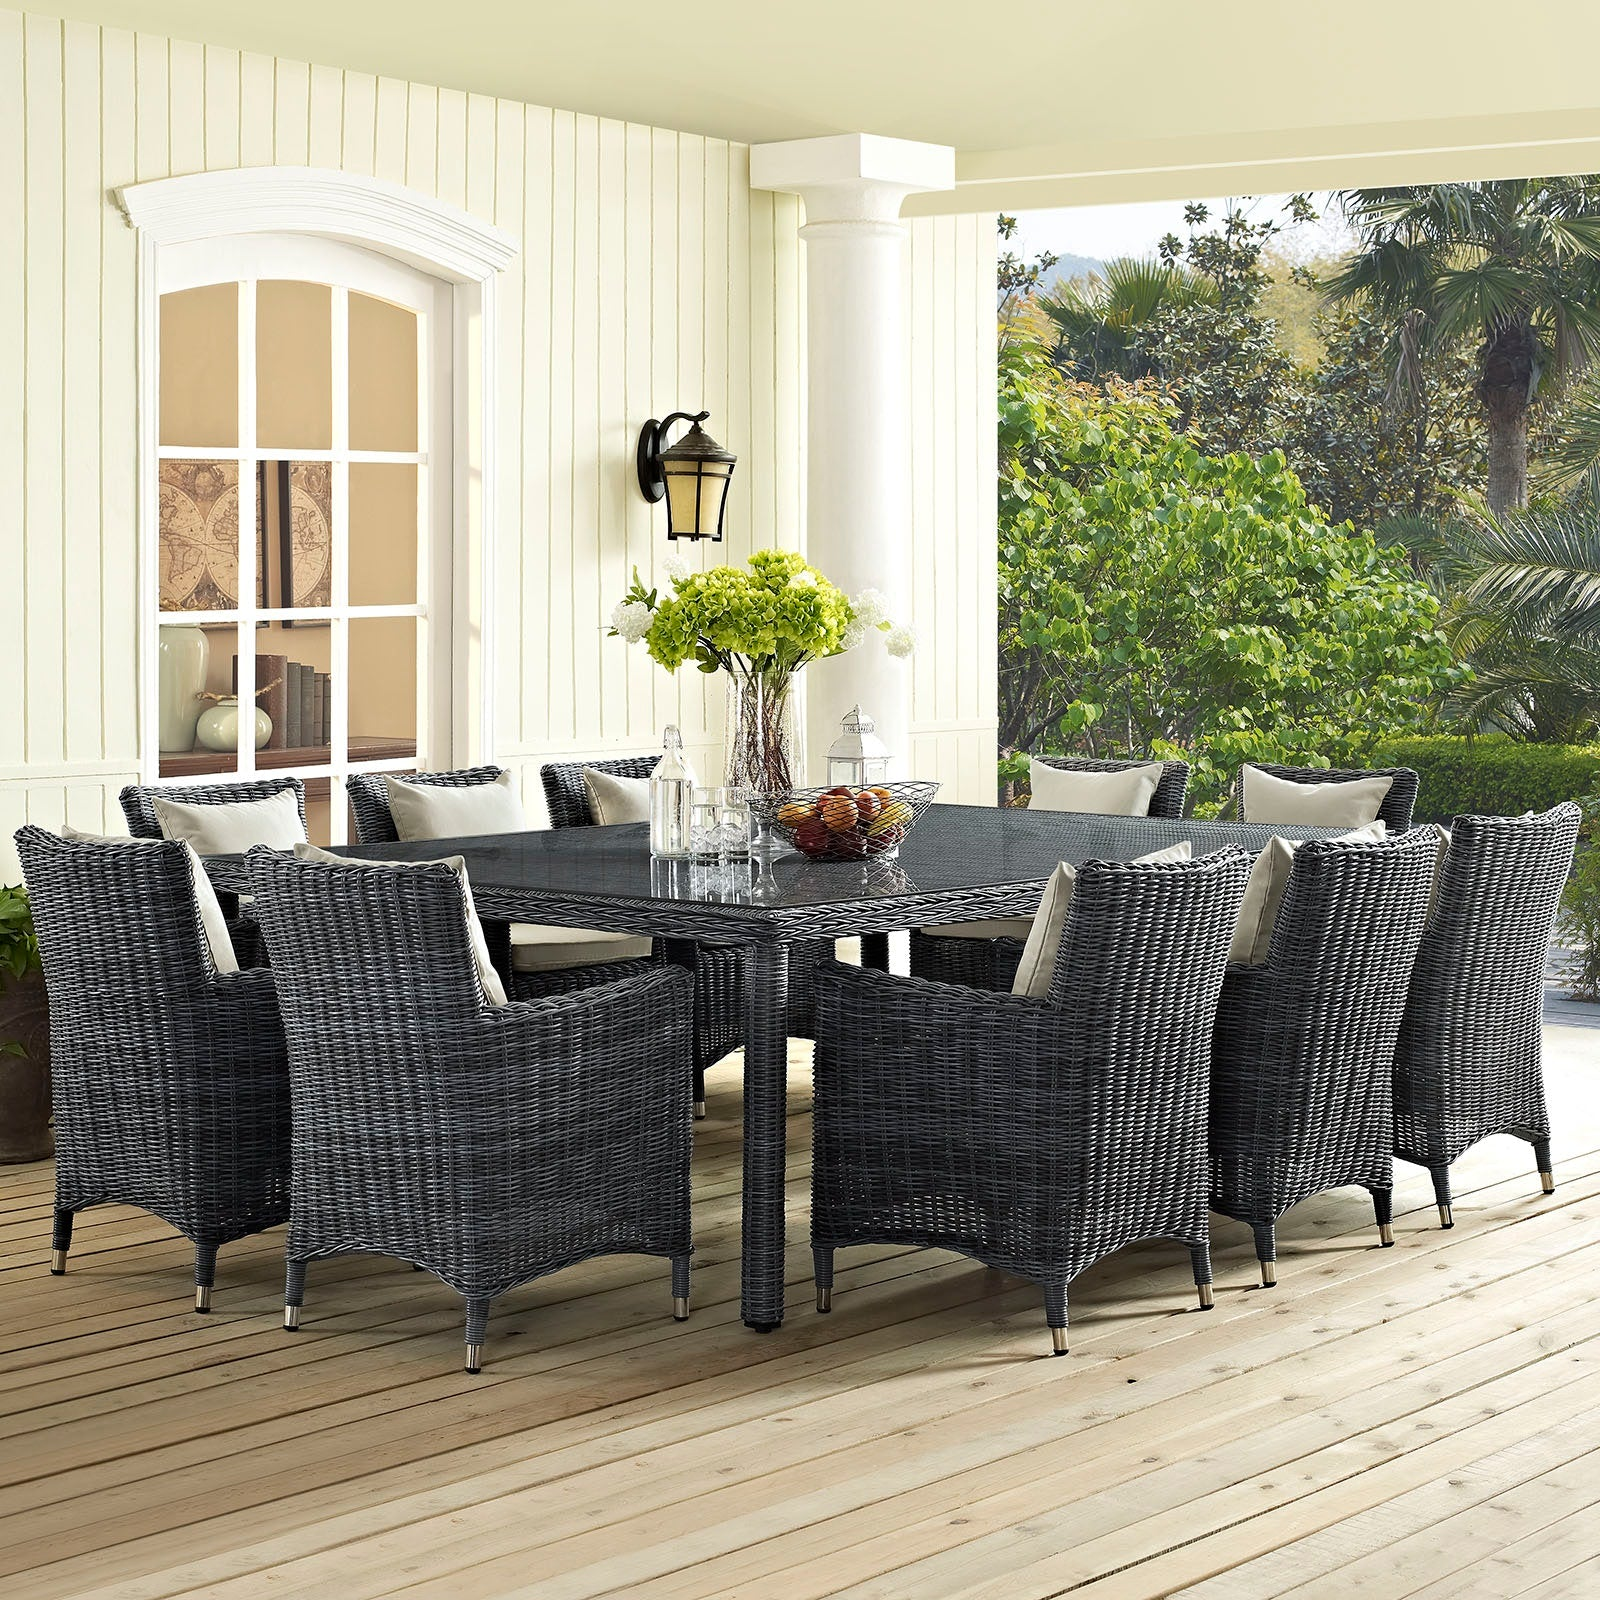 Summon 11 Piece Outdoor Patio Sunbrella® Dining Set - Antique Canvas Beige